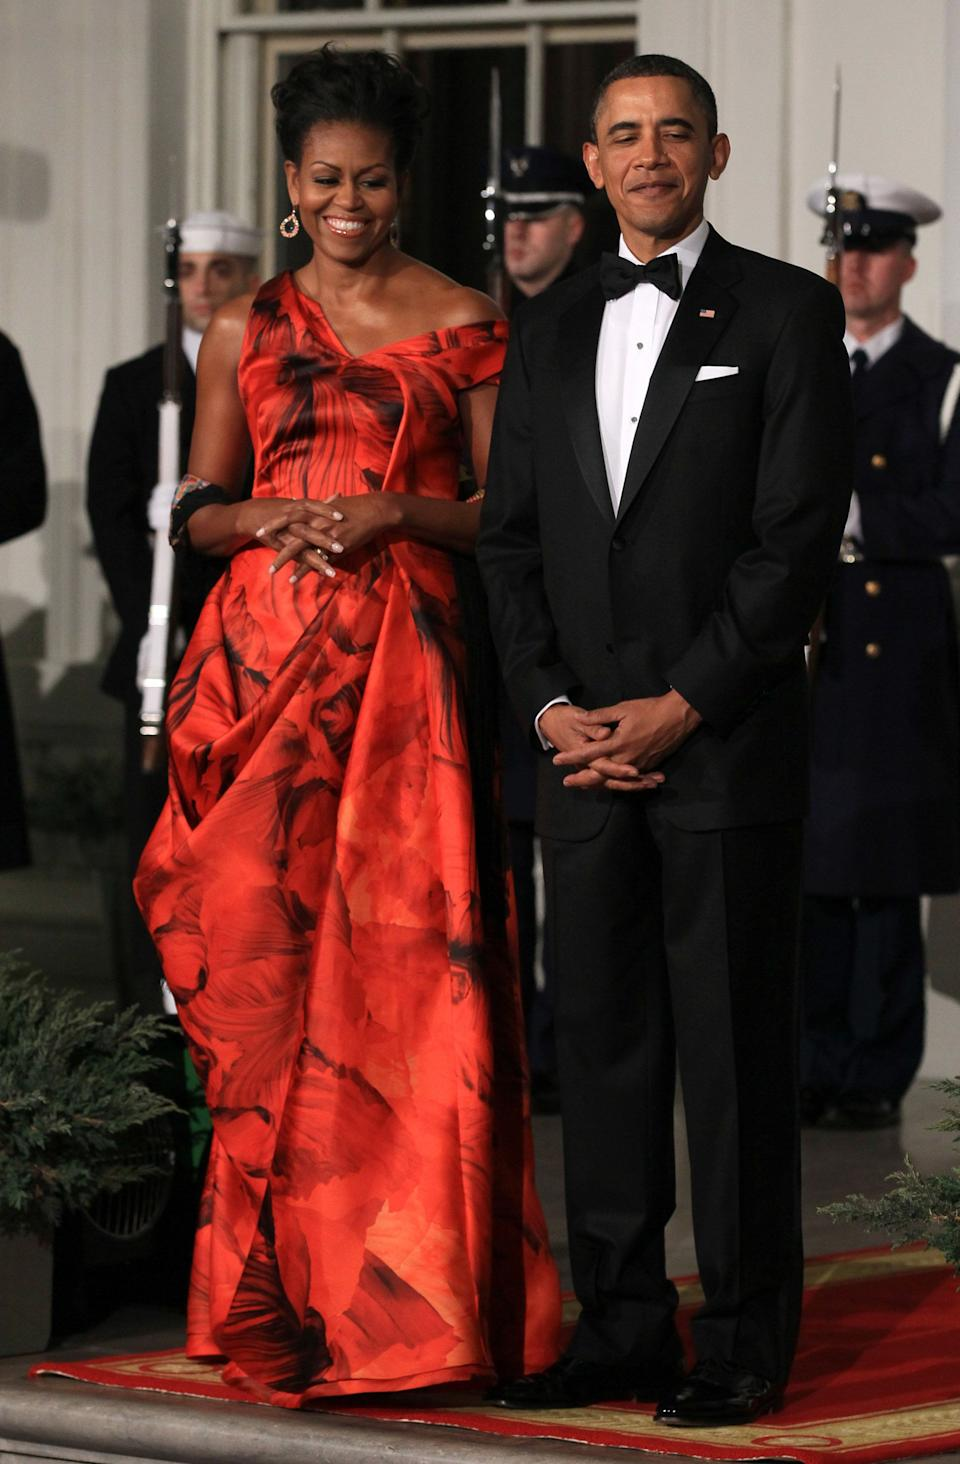 At a state dinner at the White House.